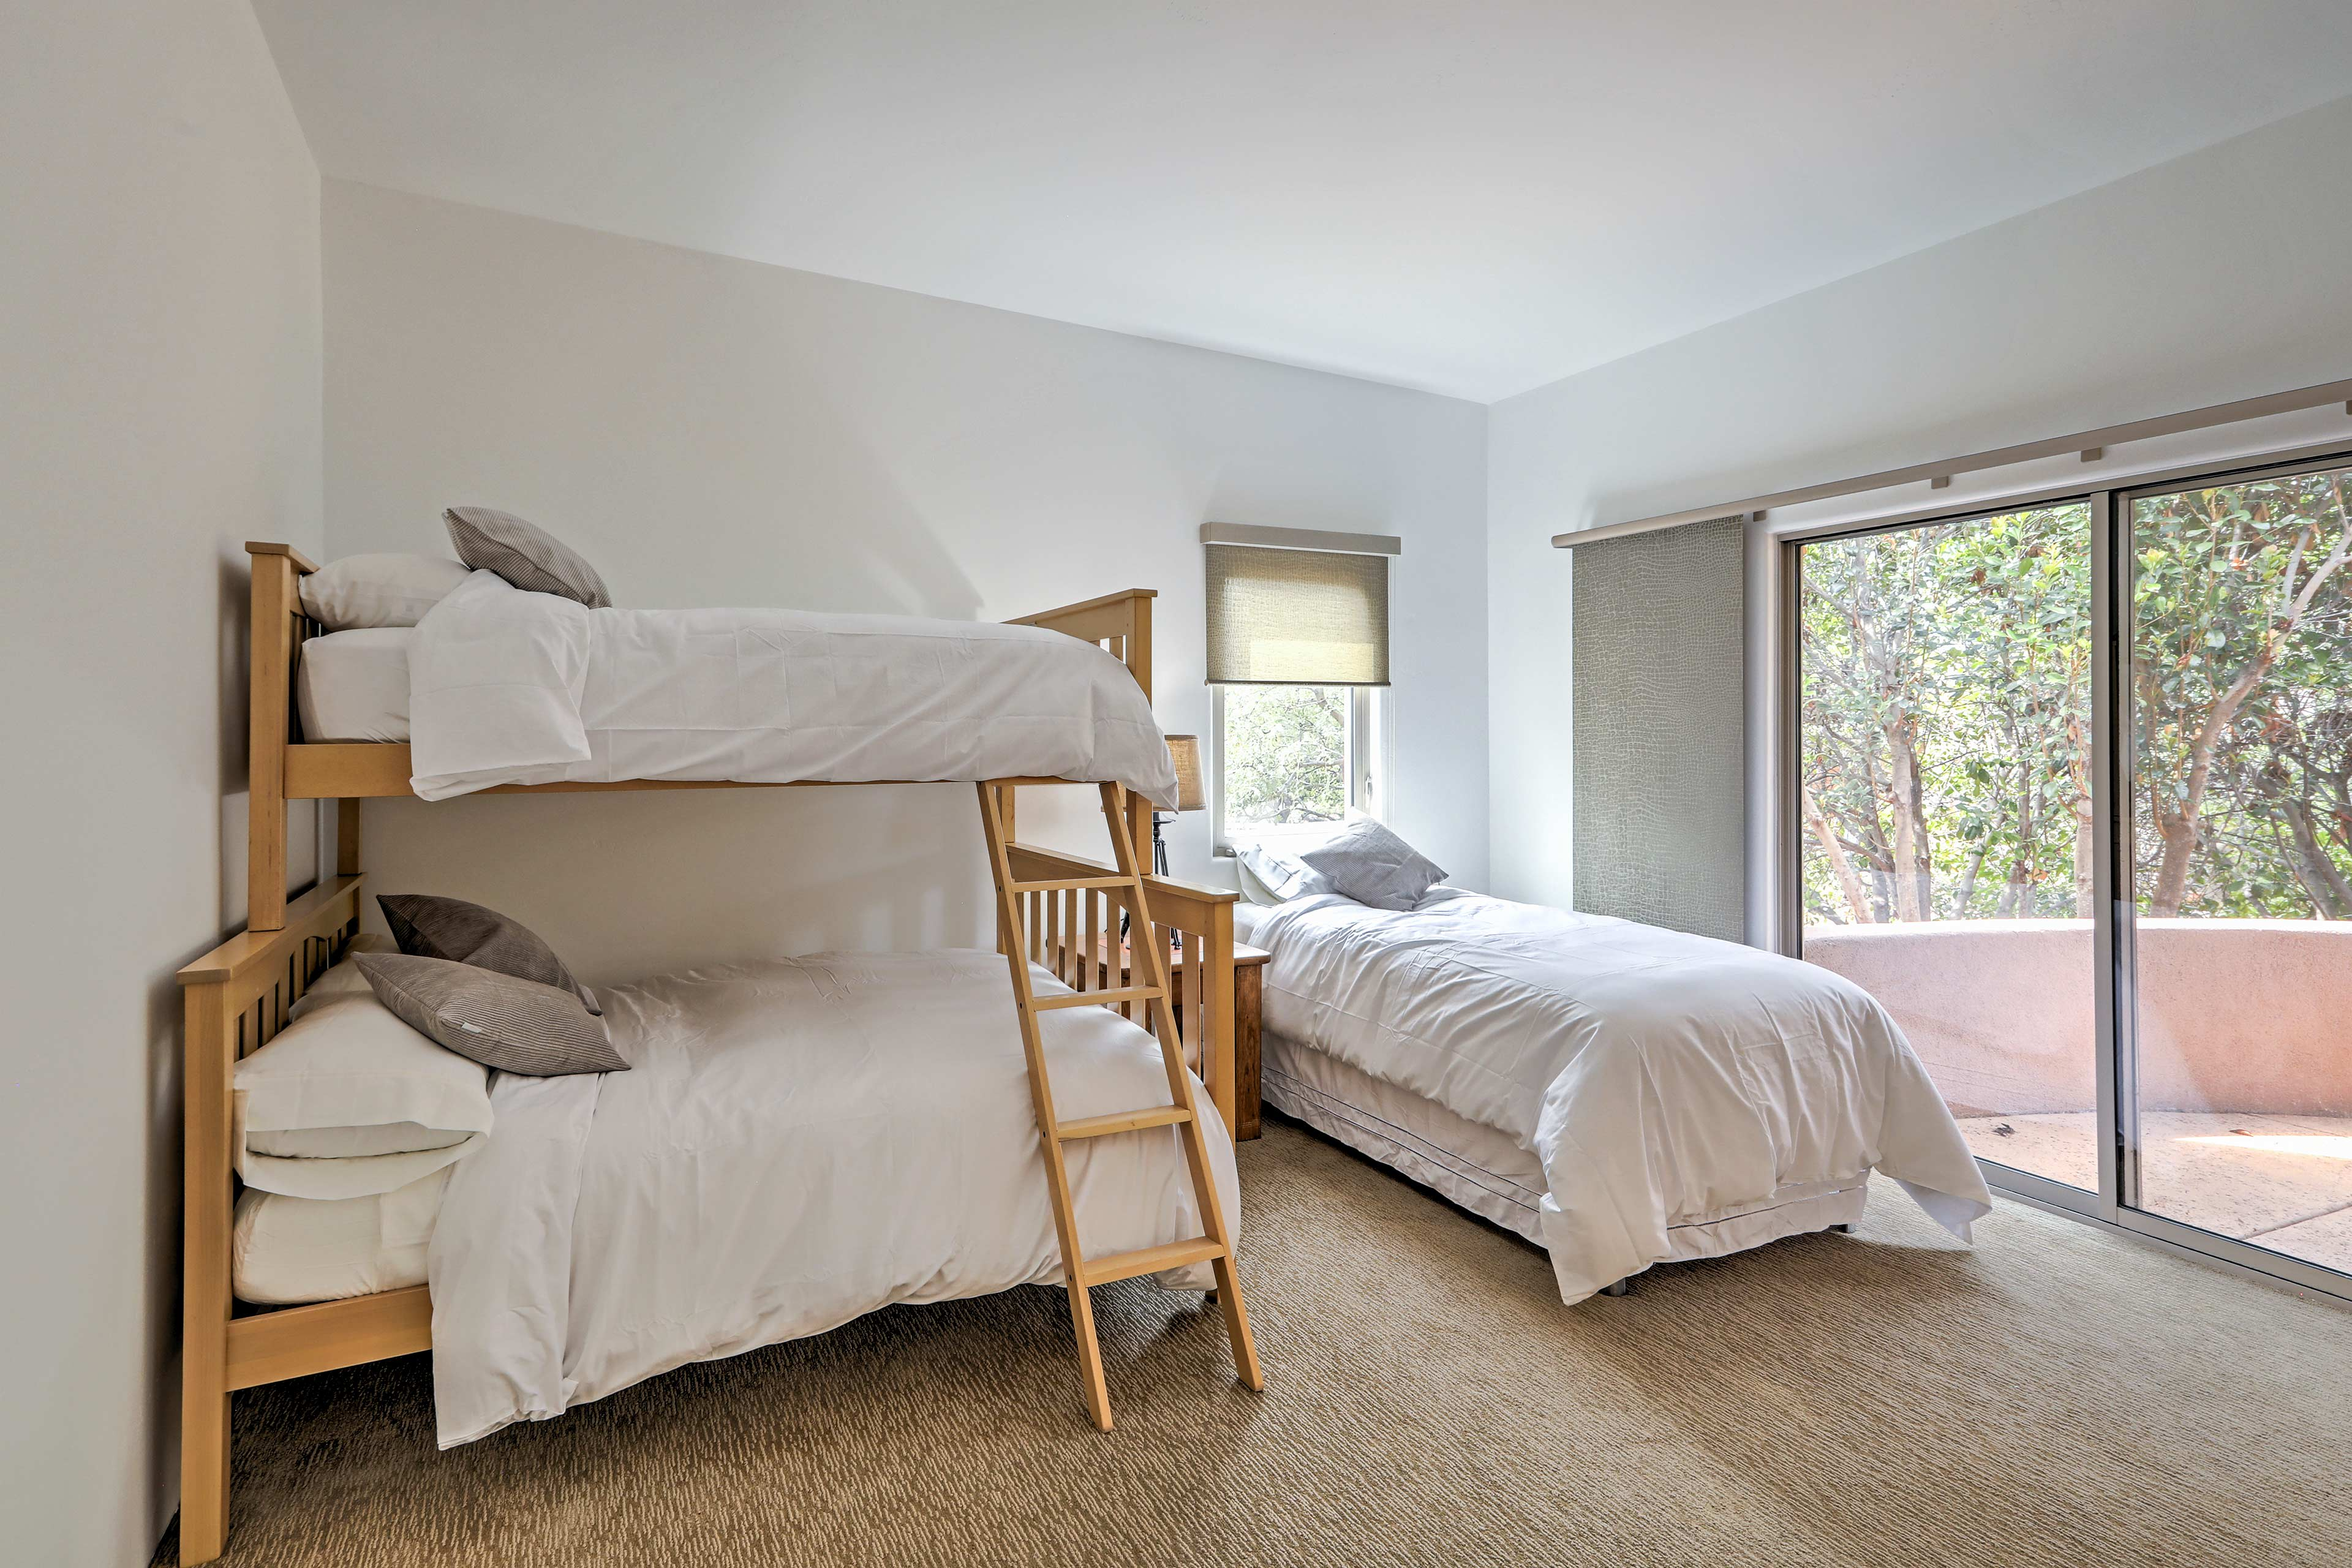 Up to 3 guests can share this first bedroom.